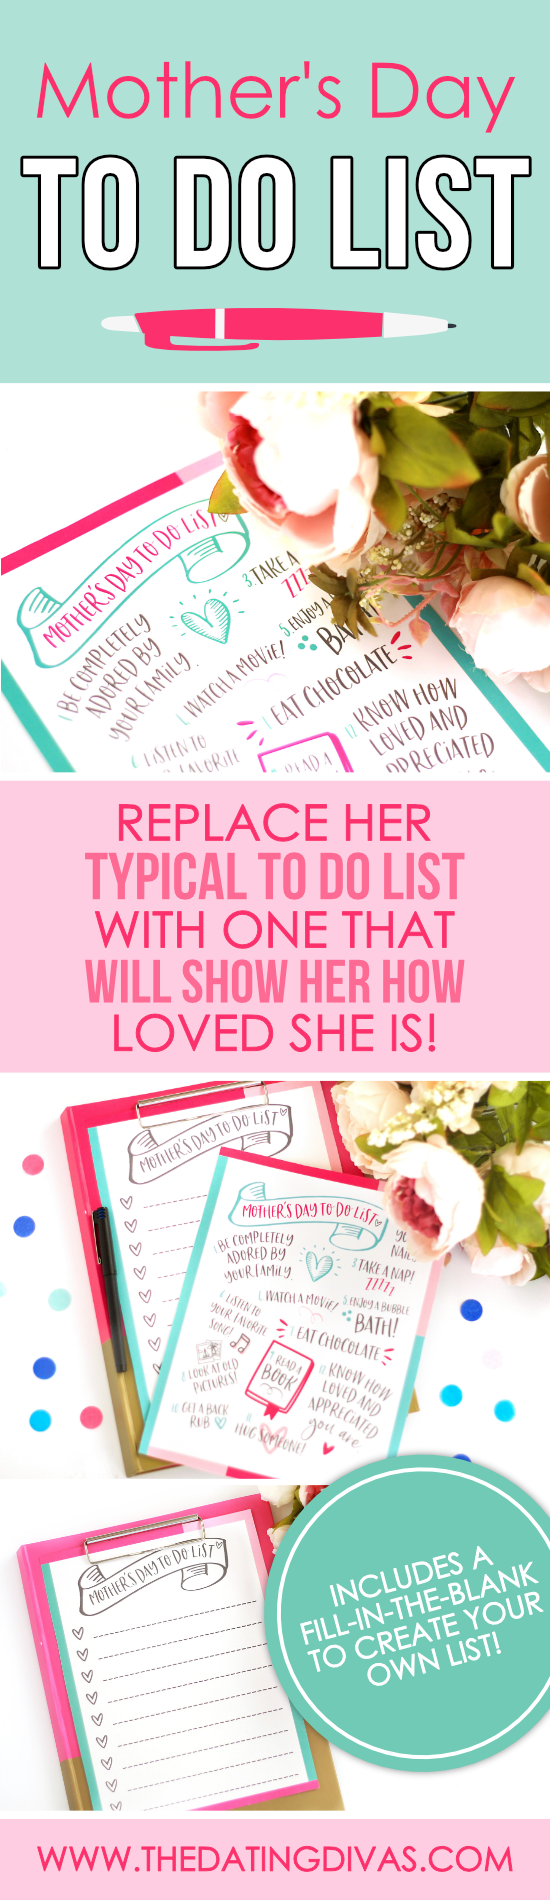 Mother's Day To-Do List Replacement #Mothersdaygiftidea #creativeMothersDayidea